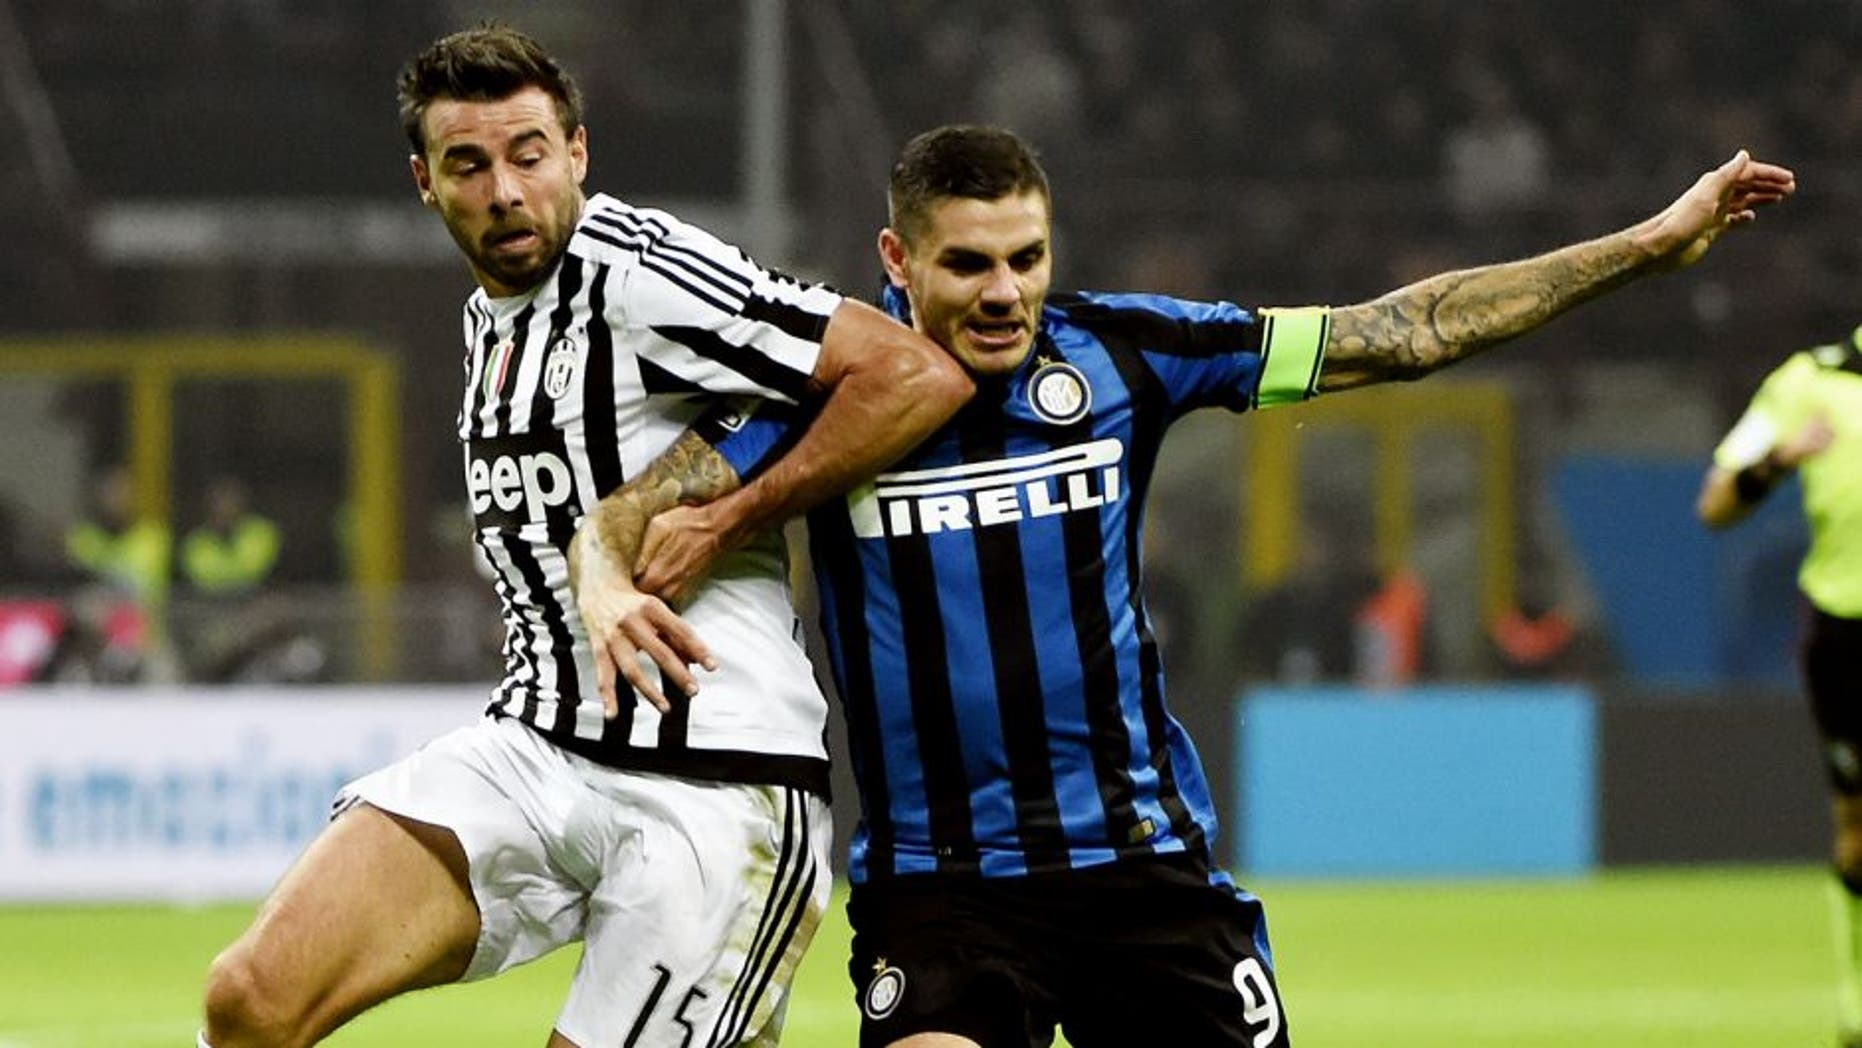 Juventus' defender from Italy Andrea Barzagli (L) fights for the ball Inter Milan's forward from Argentina Mauro Icardi during the Italian Serie A football match Inter Milan vs Juventus on October18, 2015 at the San Siro Stadium stadium in Milan. AFP PHOTO / OLIVIER MORIN (Photo credit should read OLIVIER MORIN/AFP/Getty Images)